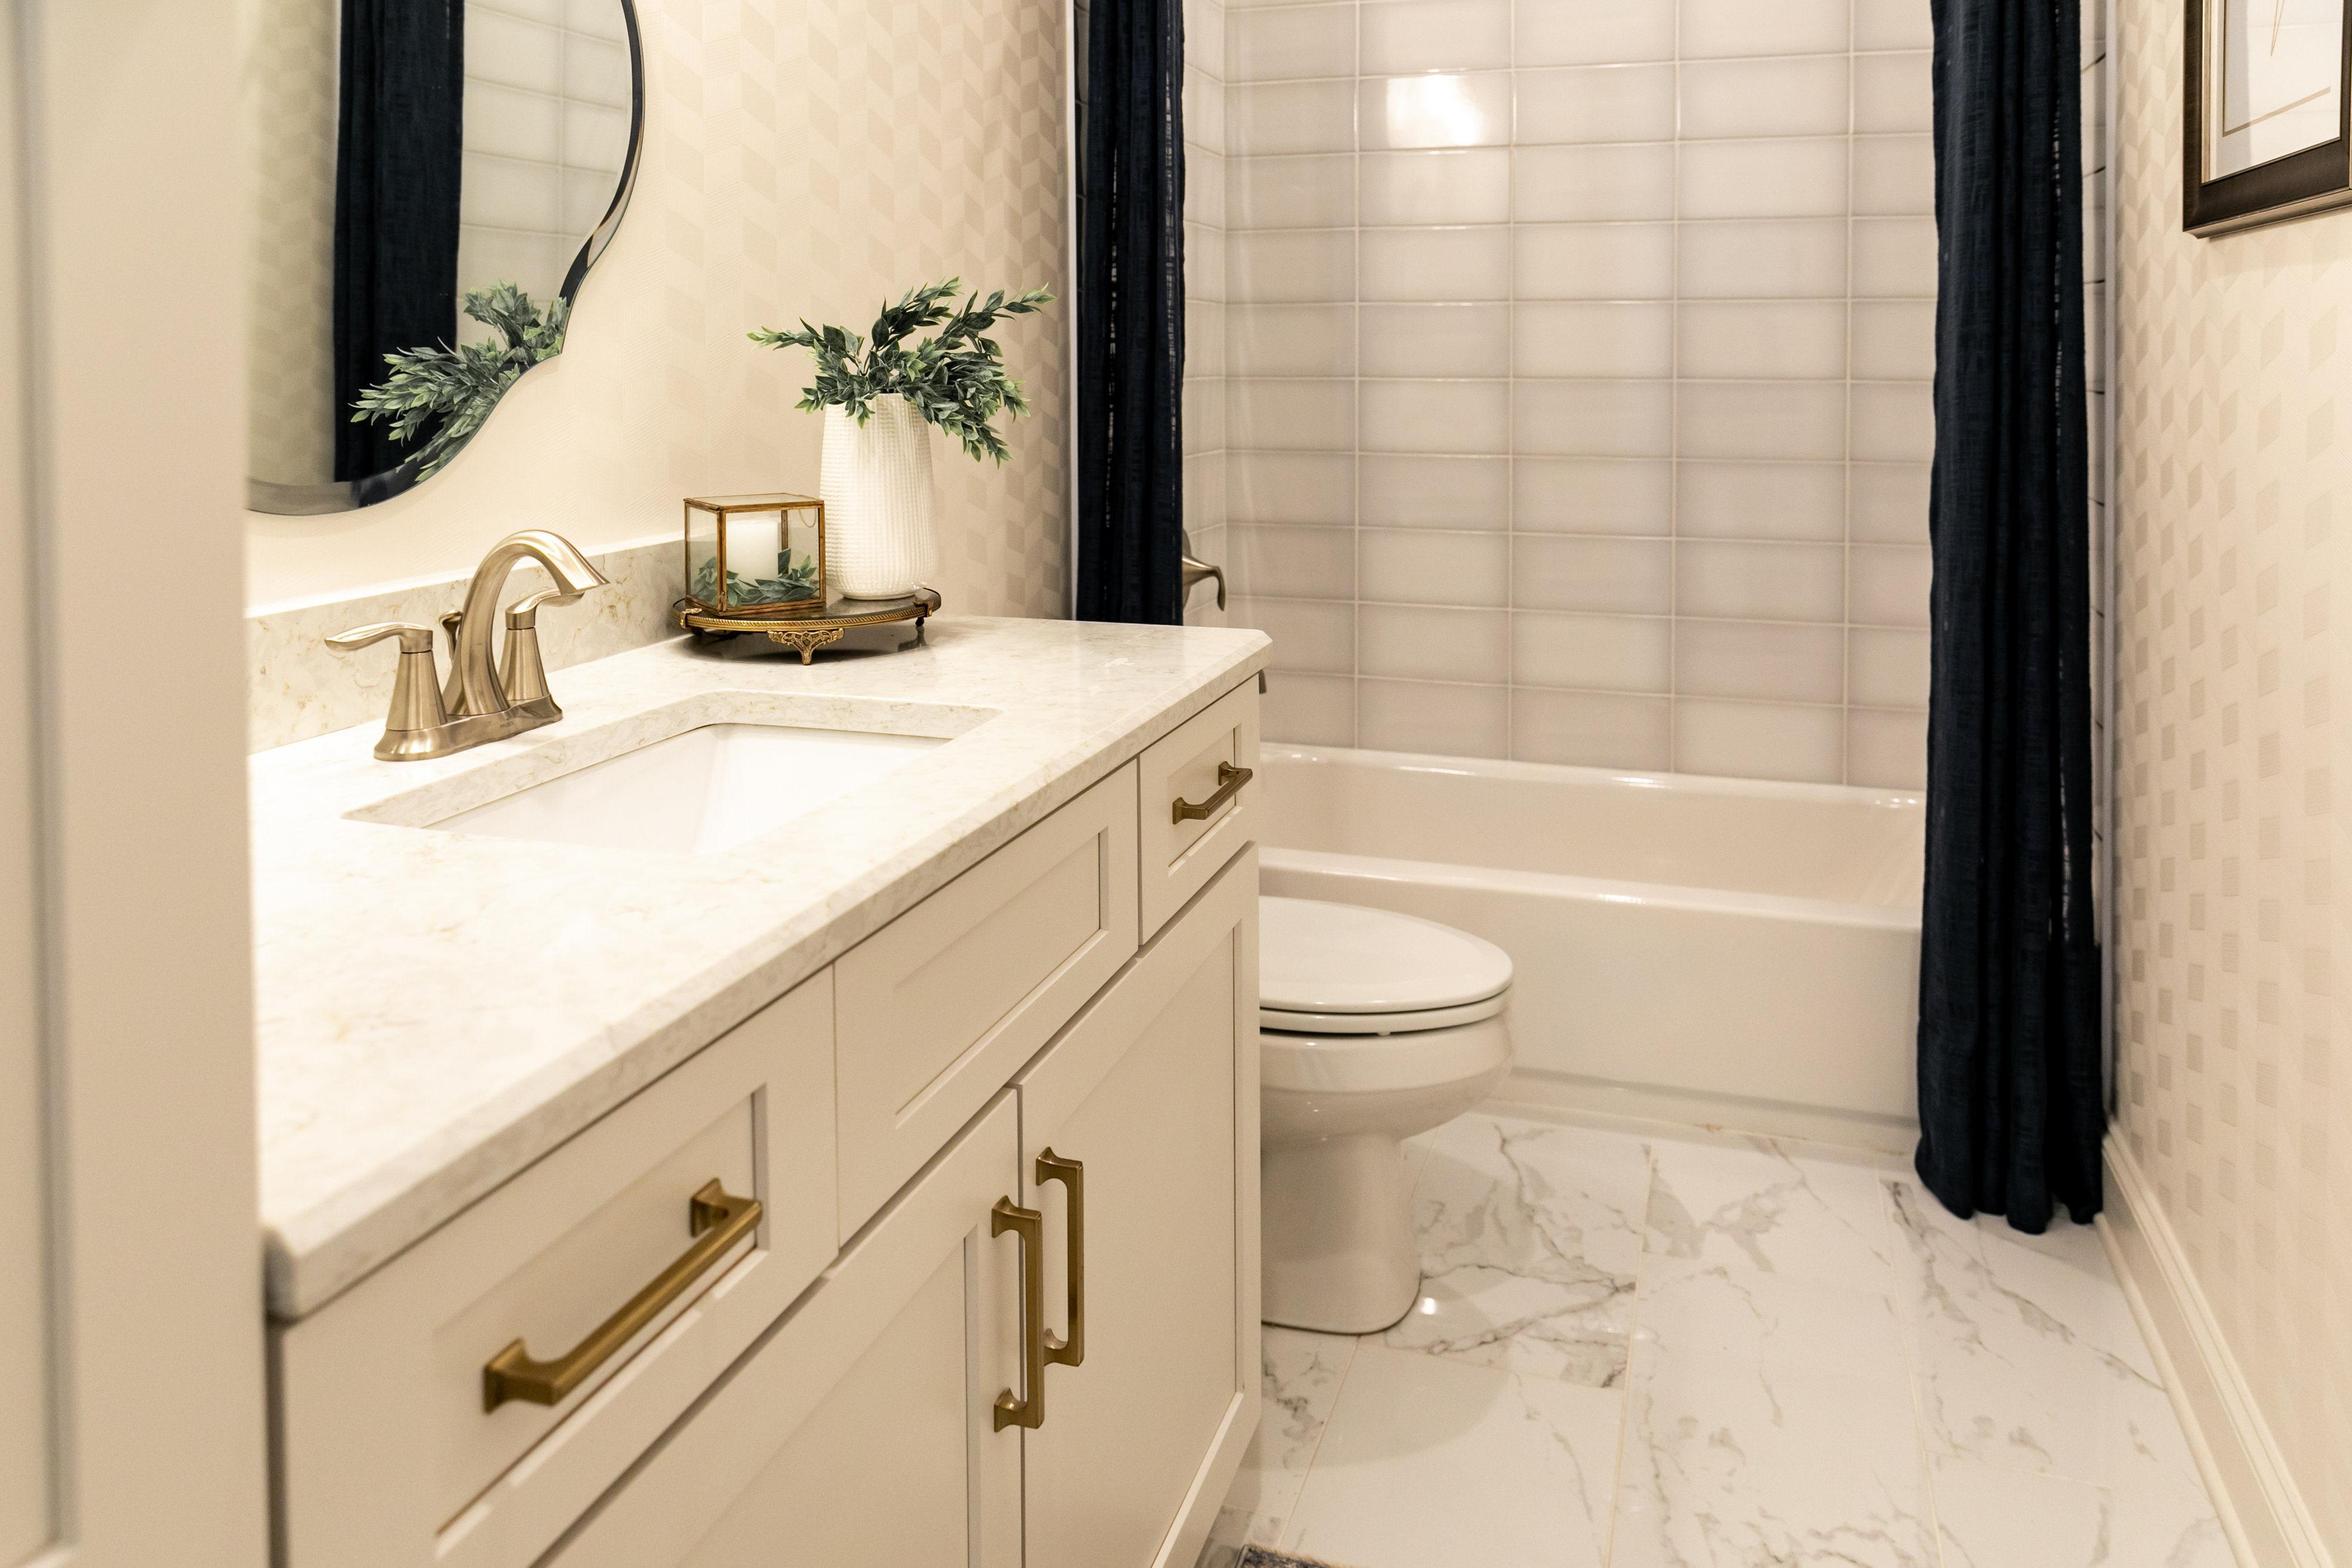 Bathroom featured in the Riverside By Regency Homebuilders in Memphis, TN